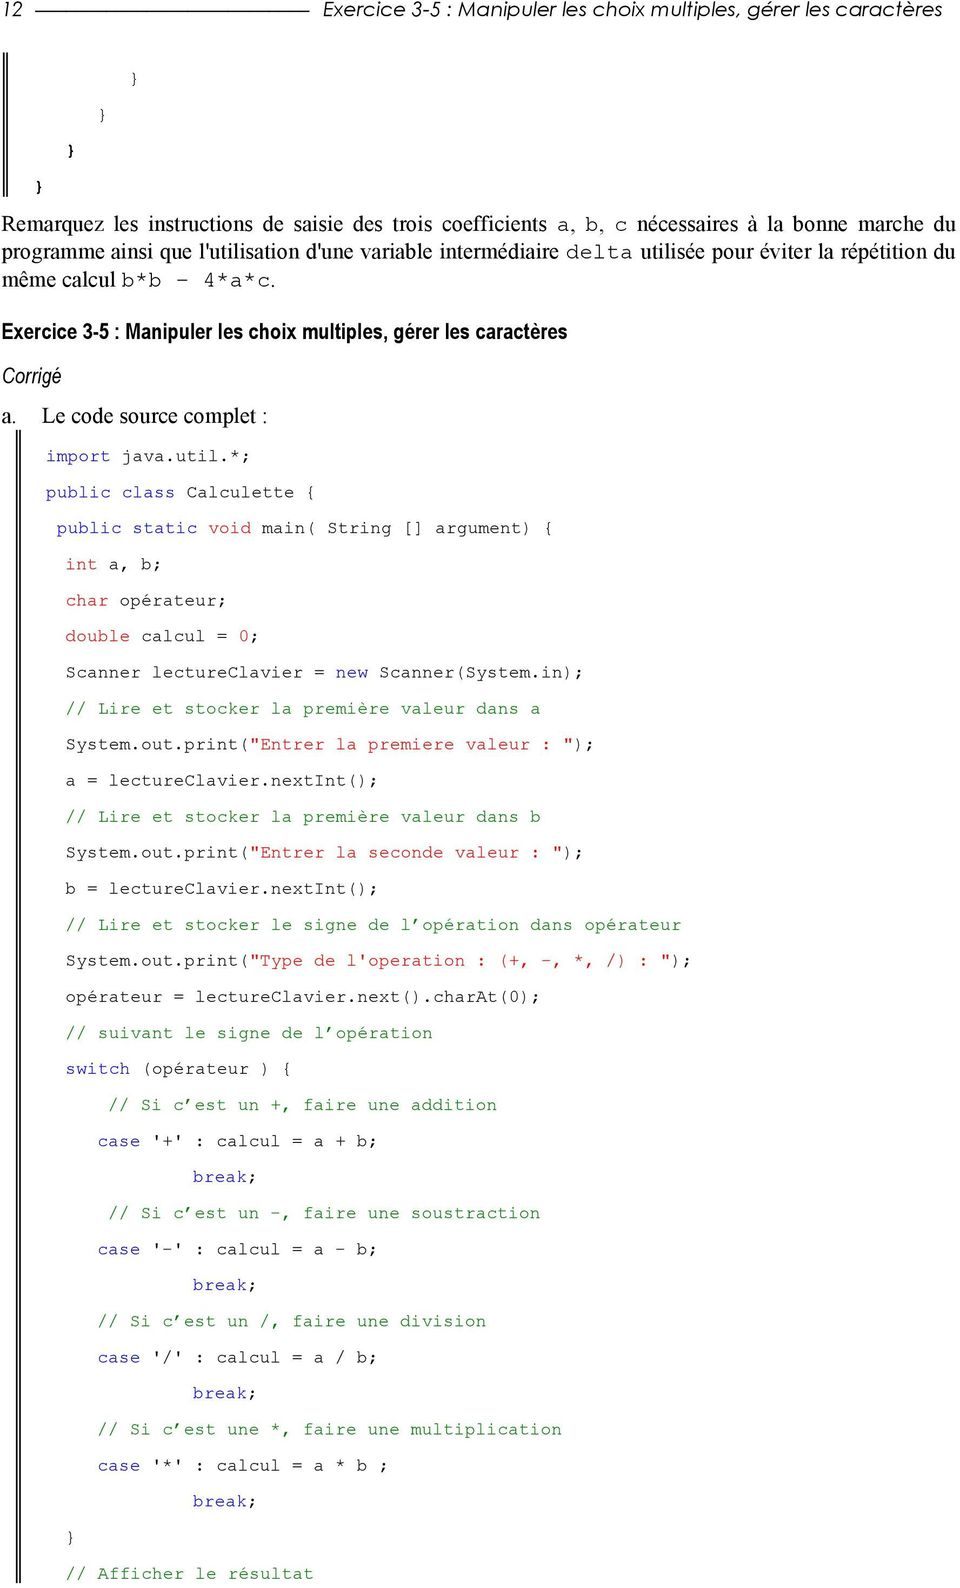 Le code source complet : import java.util.